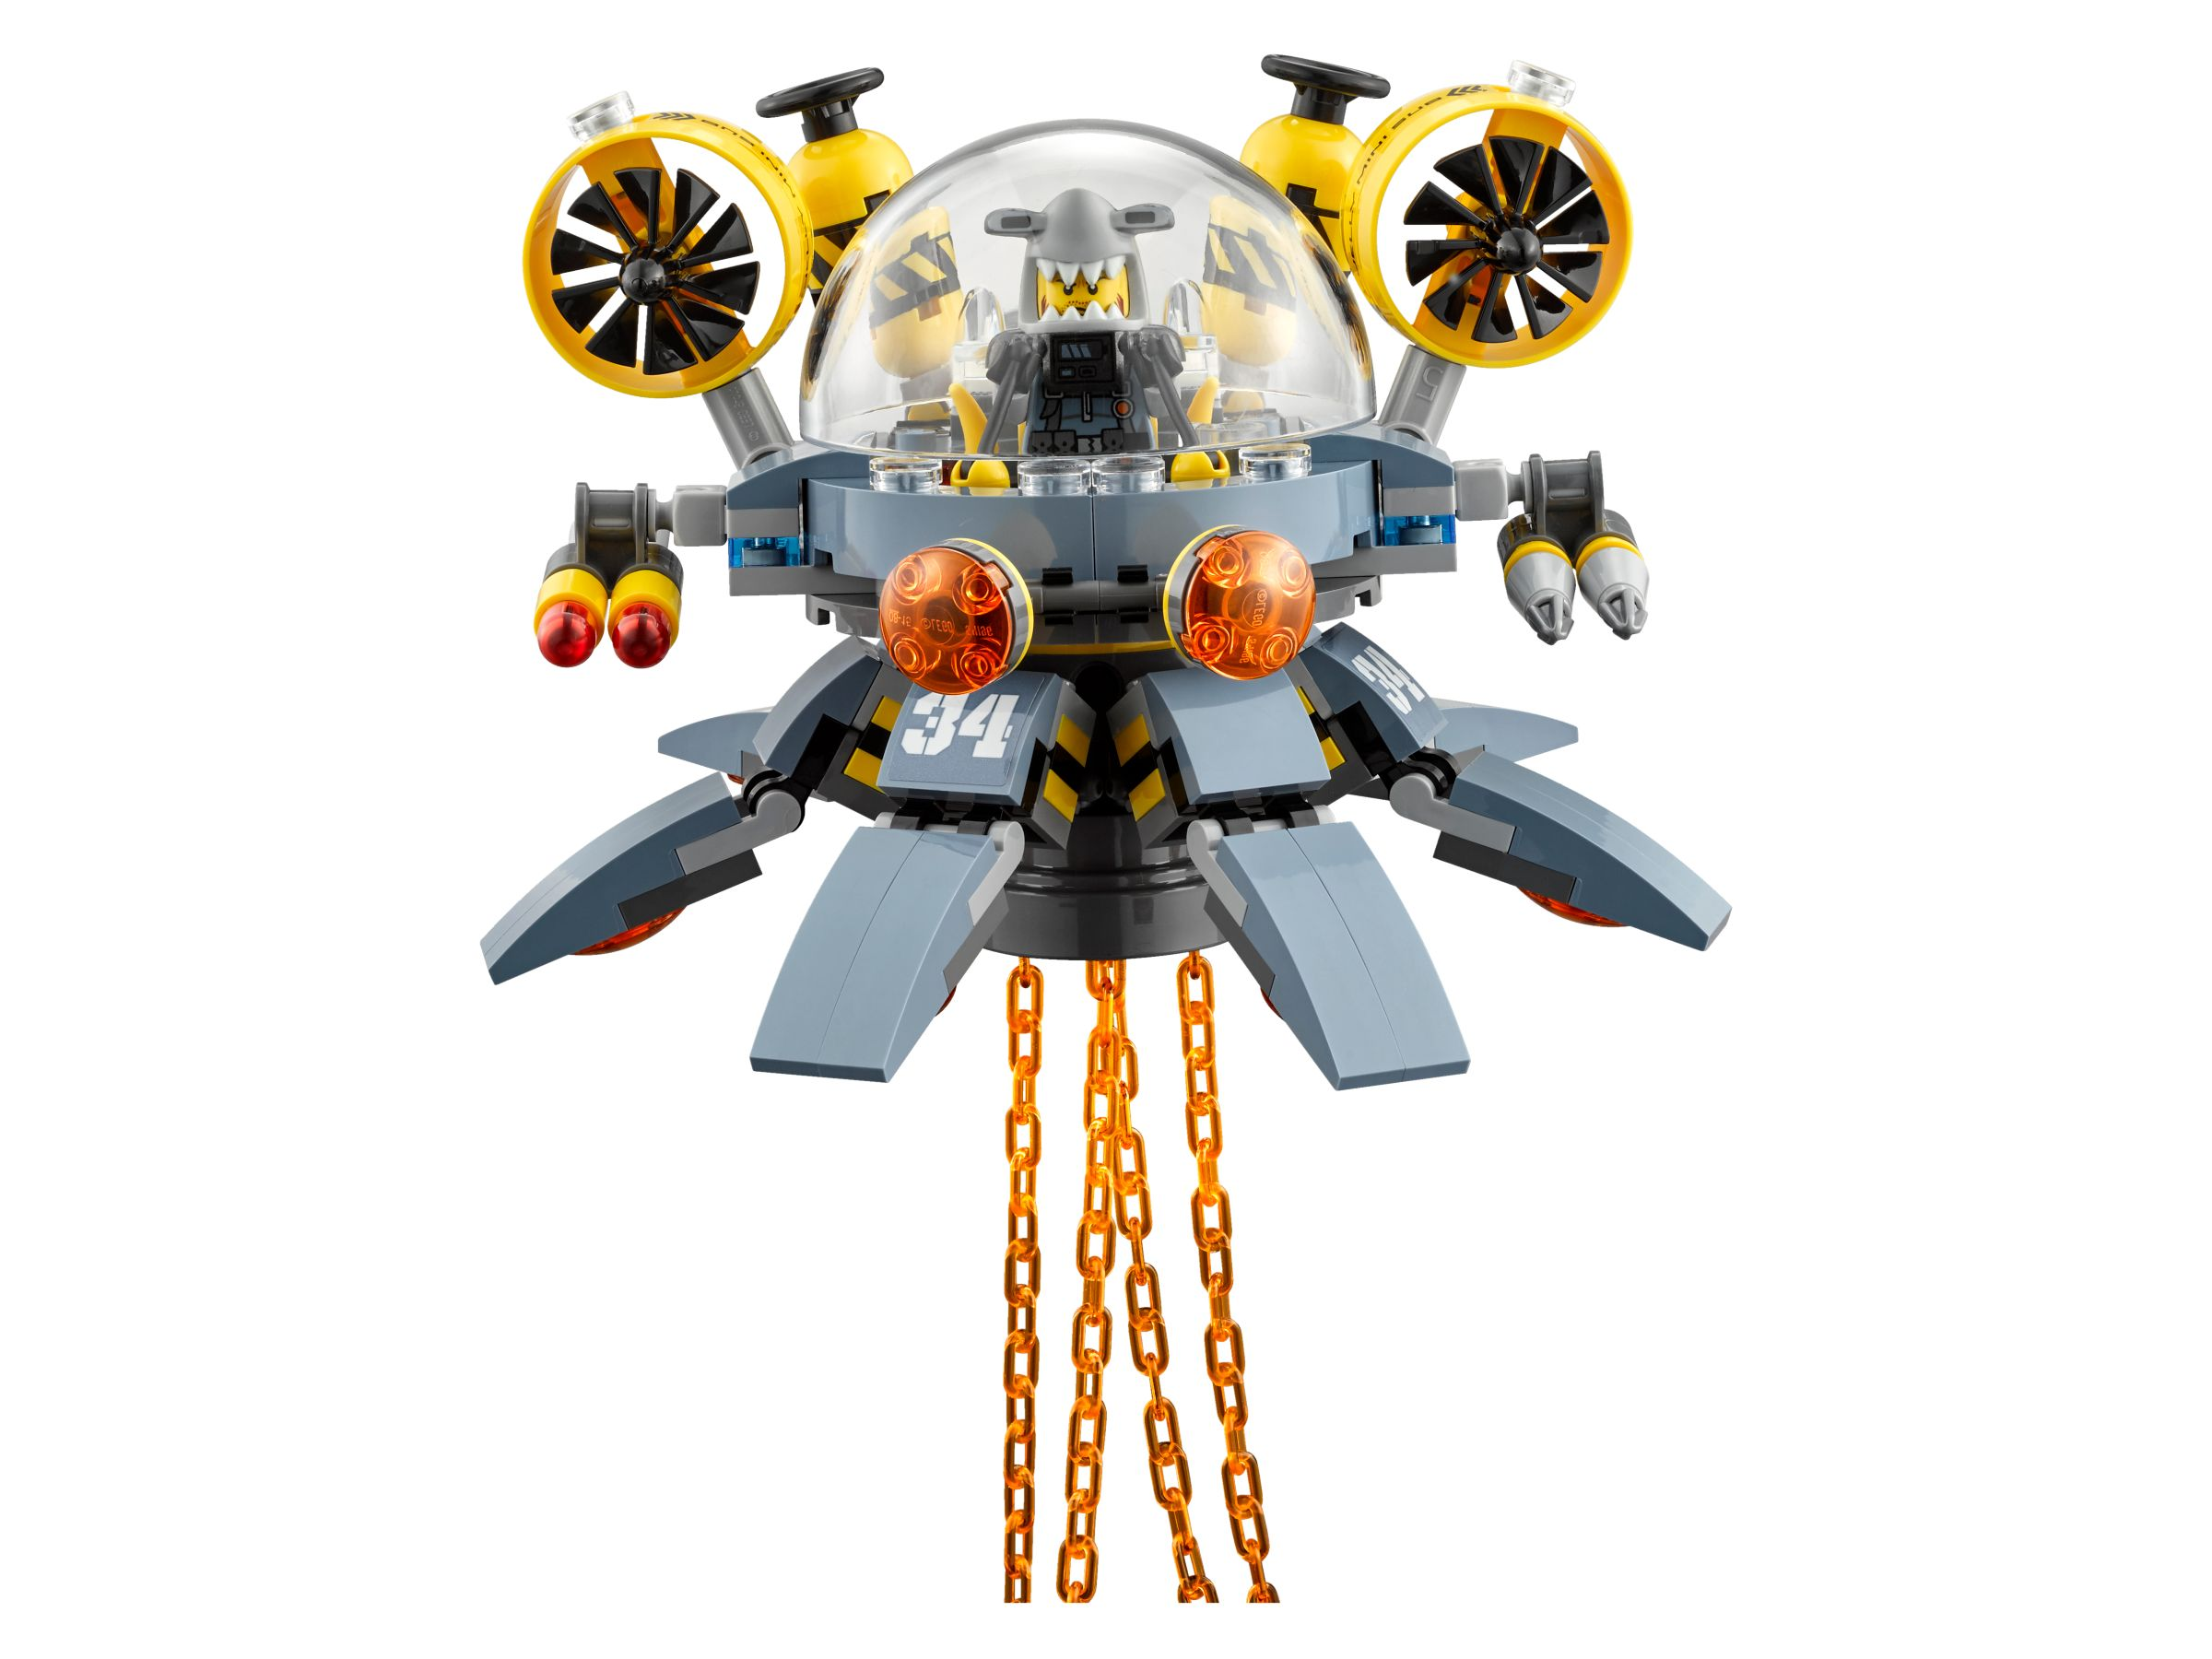 LEGO The LEGO Ninjago Movie 70610 Turbo Qualle LEGO_70610_alt4.jpg